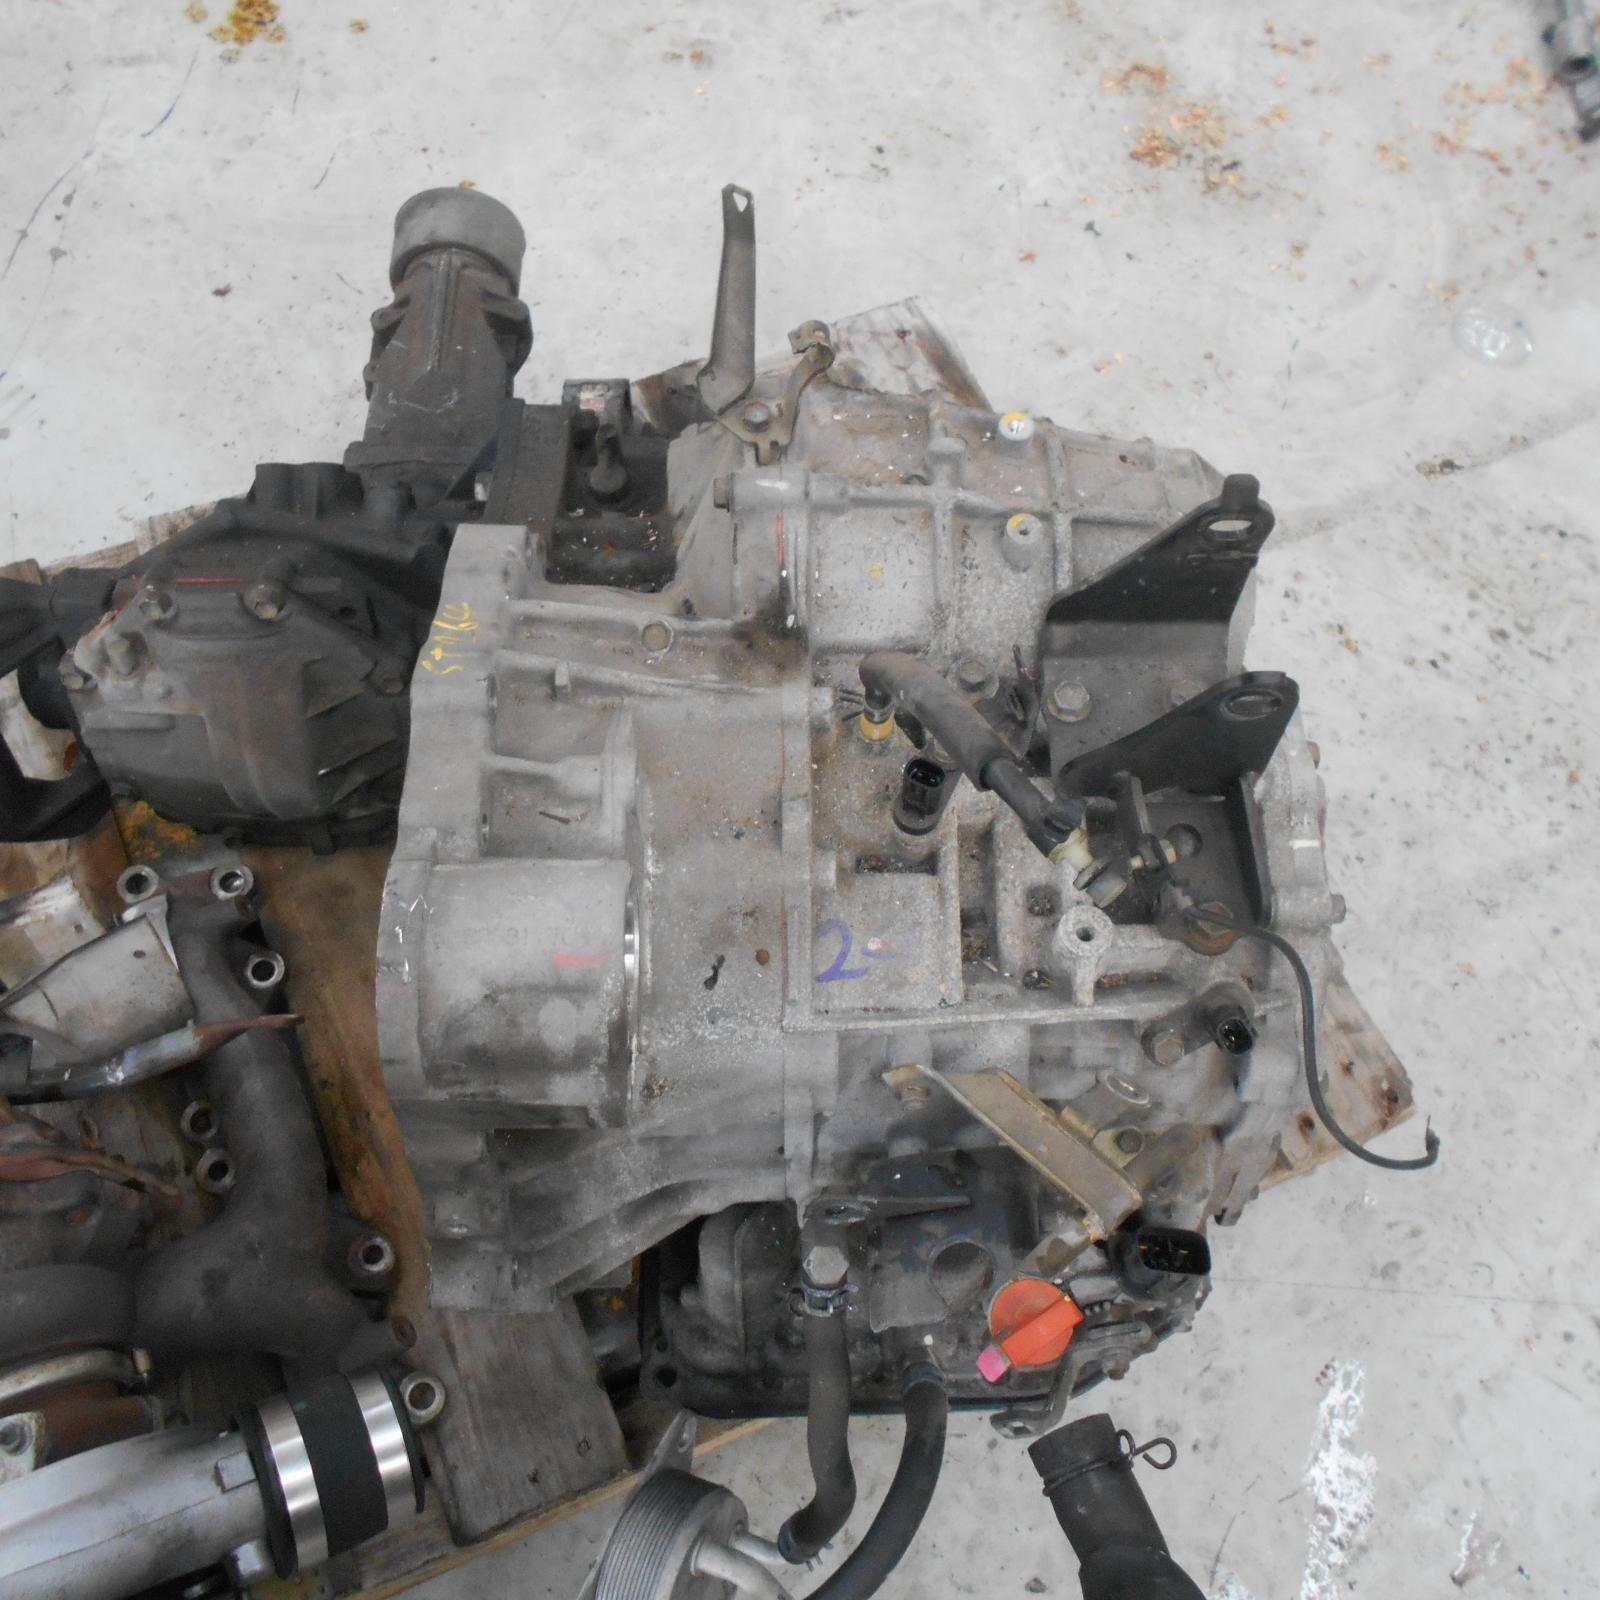 TOYOTA CALDINA, Trans/Gearbox, AUTO, PETROL, 2.0, 3S-GTE, T240, 09/02-06/07 (IMPORT)